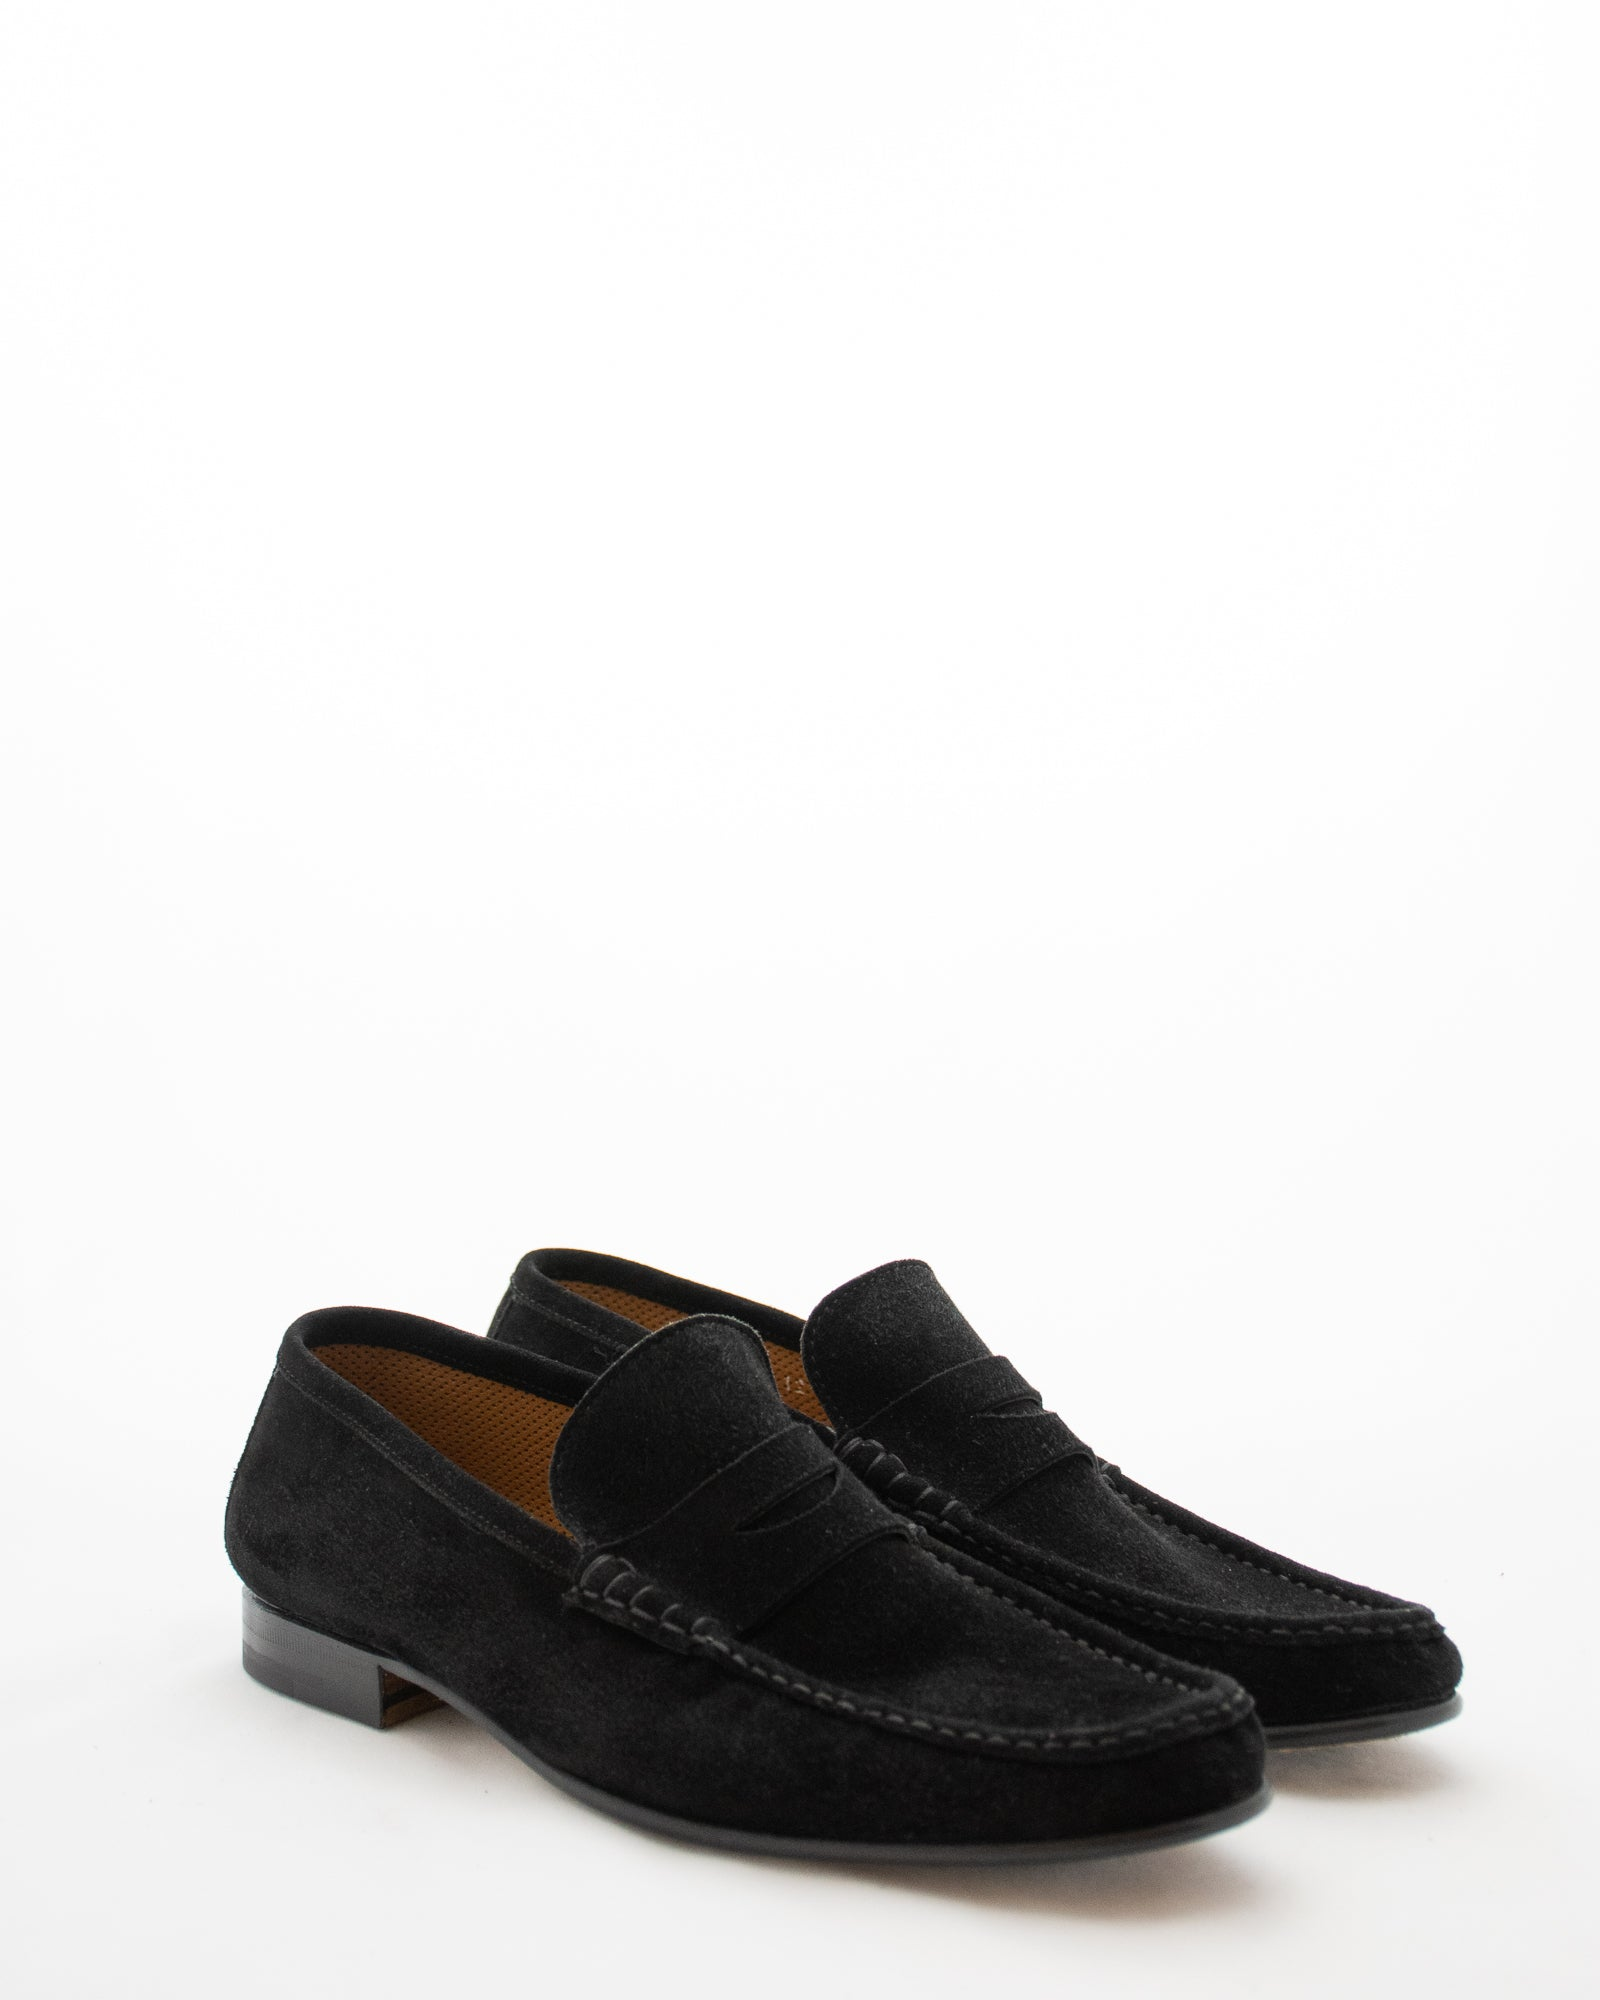 STEMAR Suede Loafer